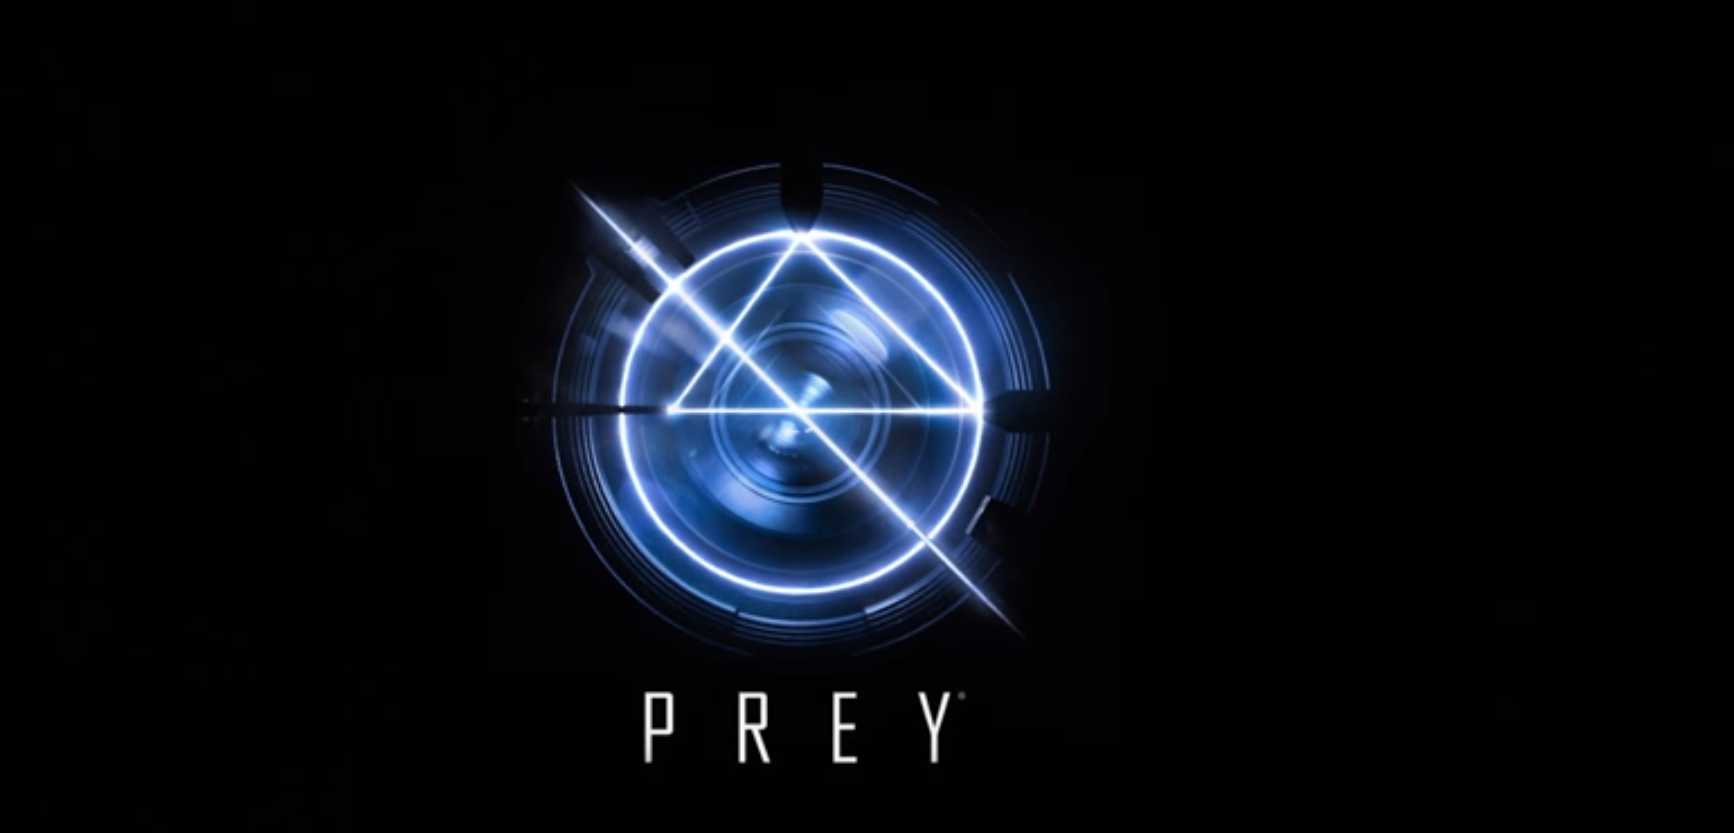 Prey gets a horror reboot set on a space station